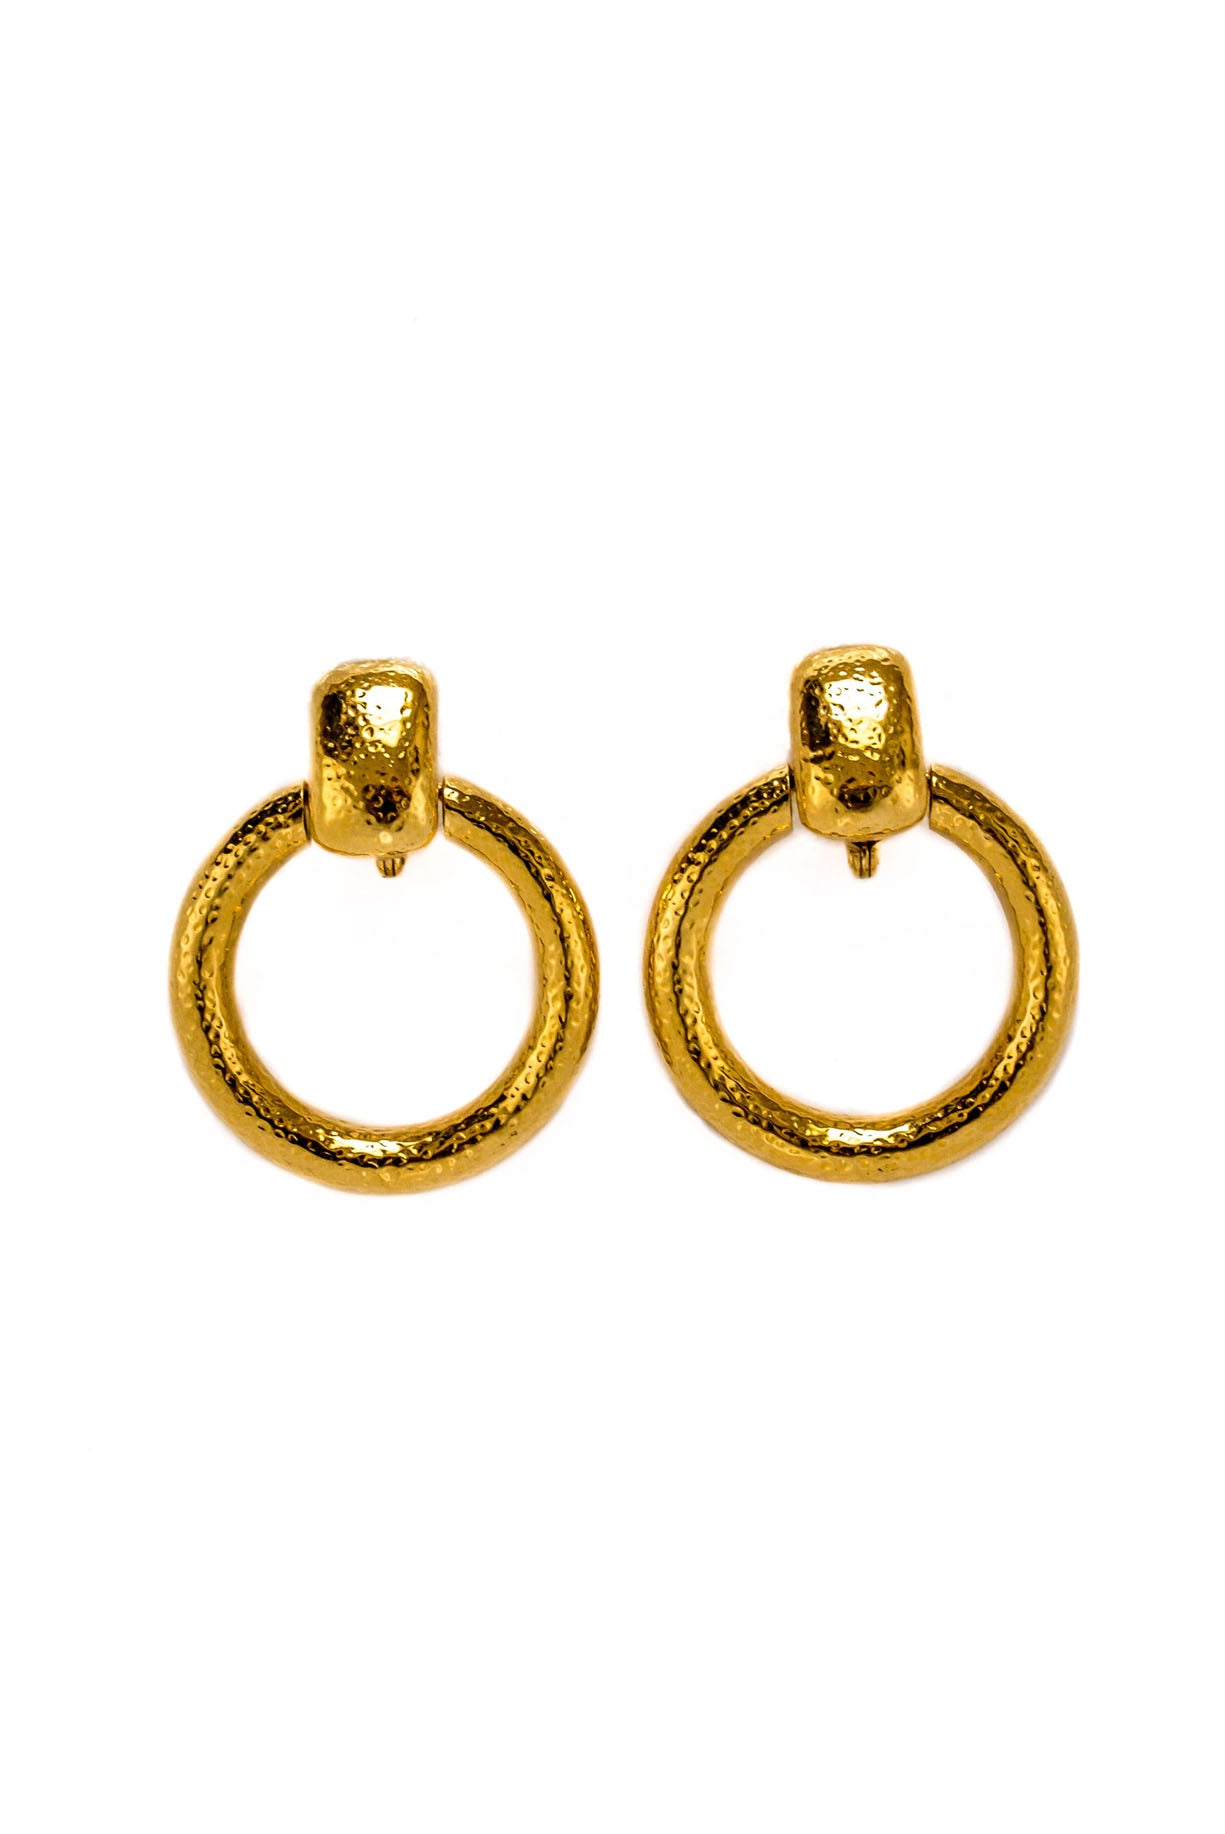 Monet Statement Hoop Earrings from Sweet & Spark.